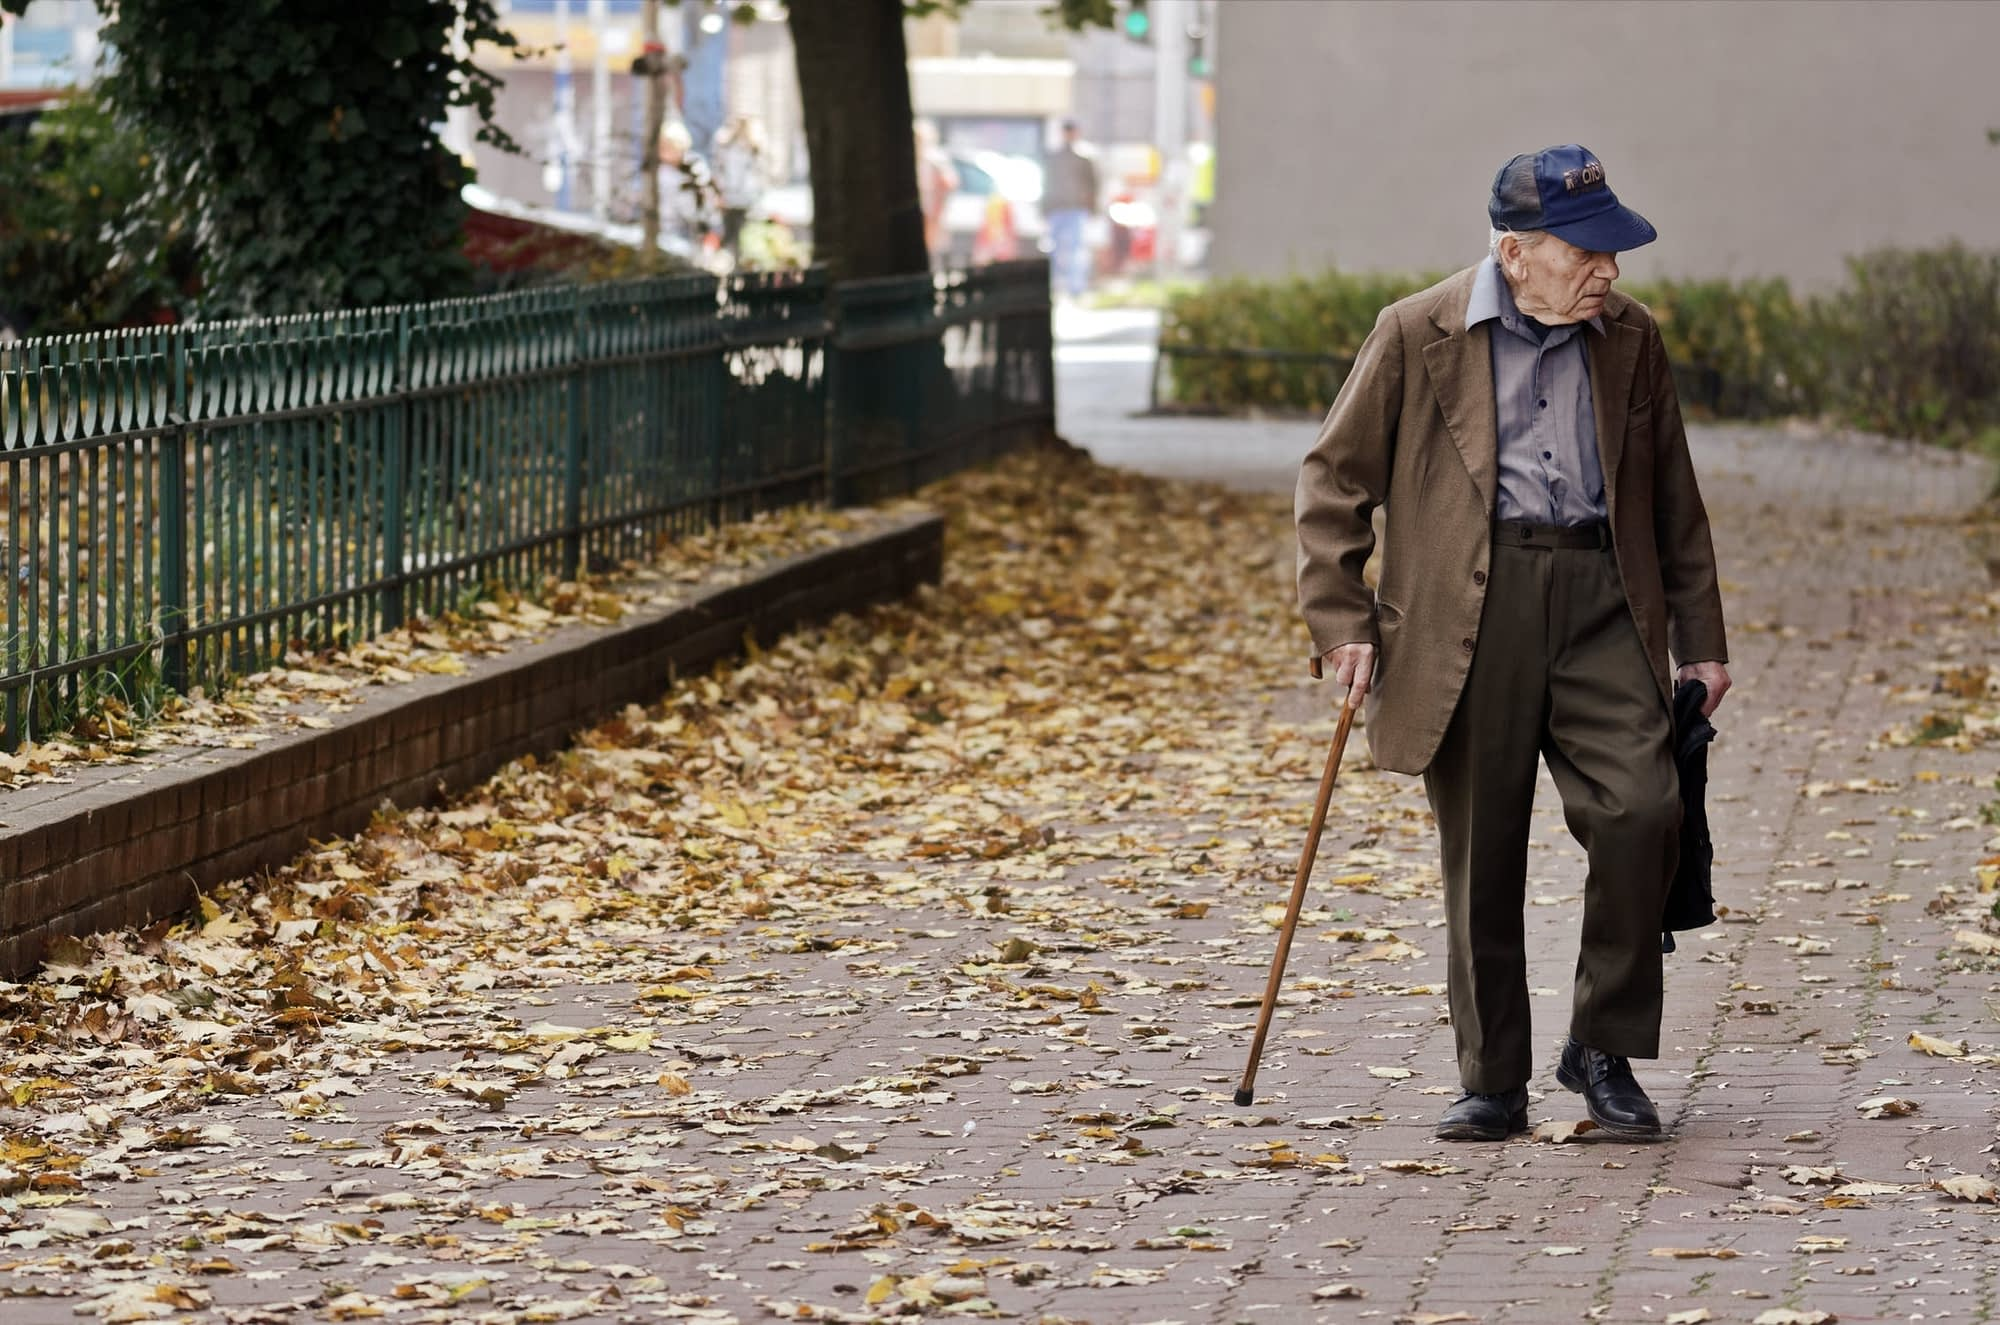 Technology To Help Prevent Falls